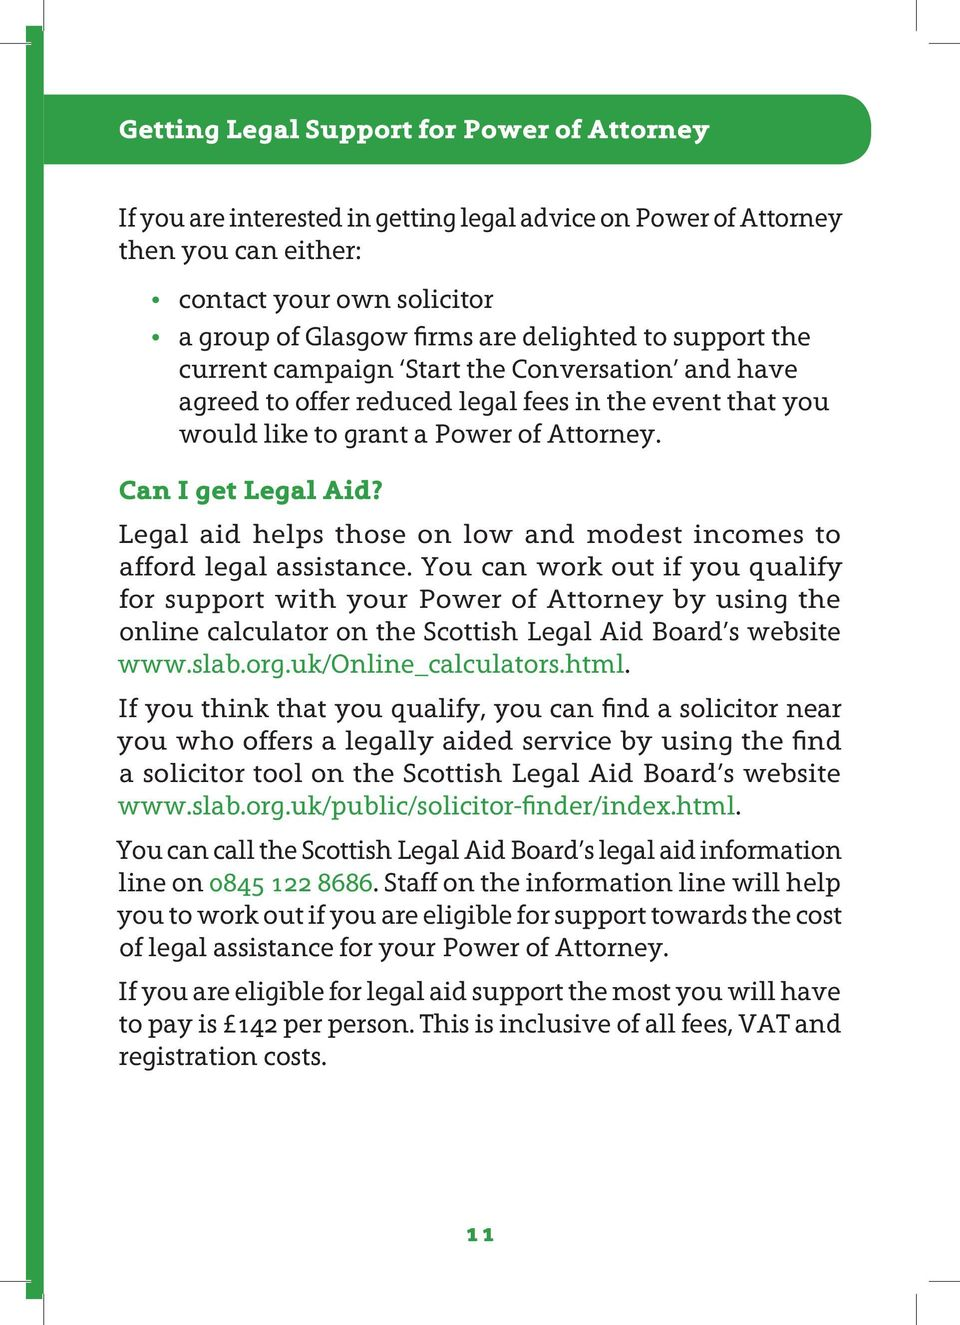 Legal aid helps those on low and modest incomes to afford legal assistance.